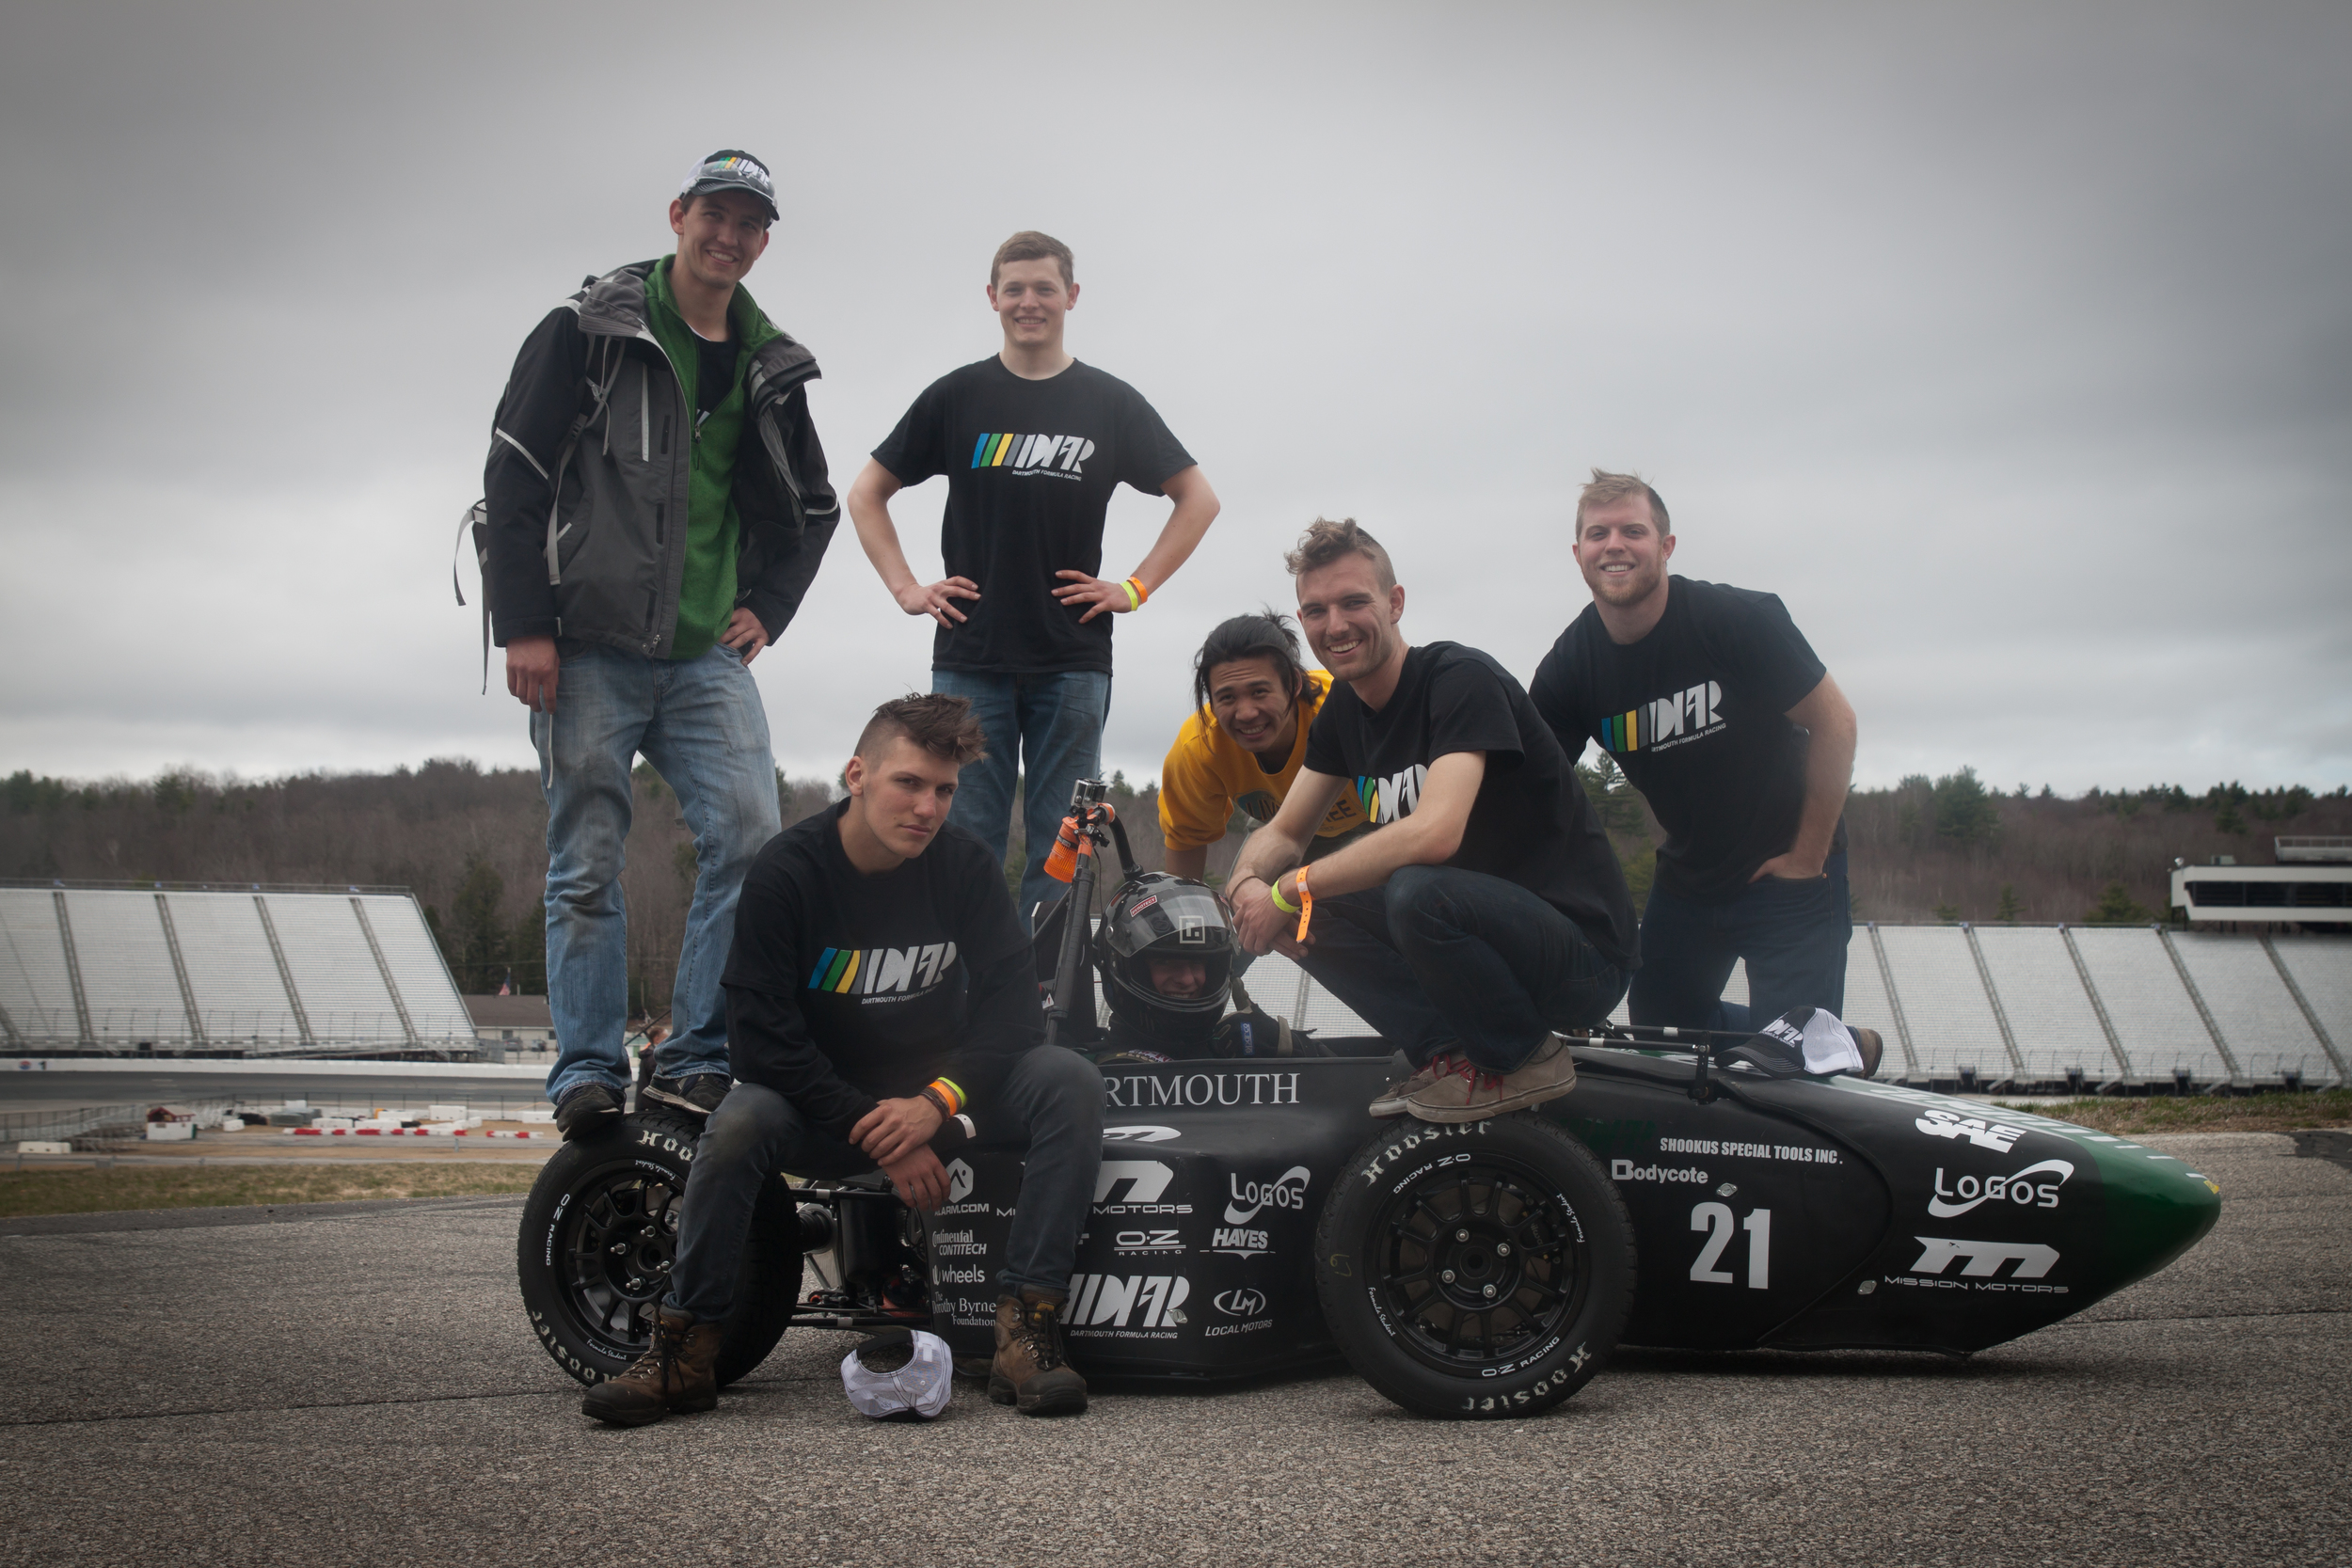 Post-competition at the New Hampshire Motor Speedway